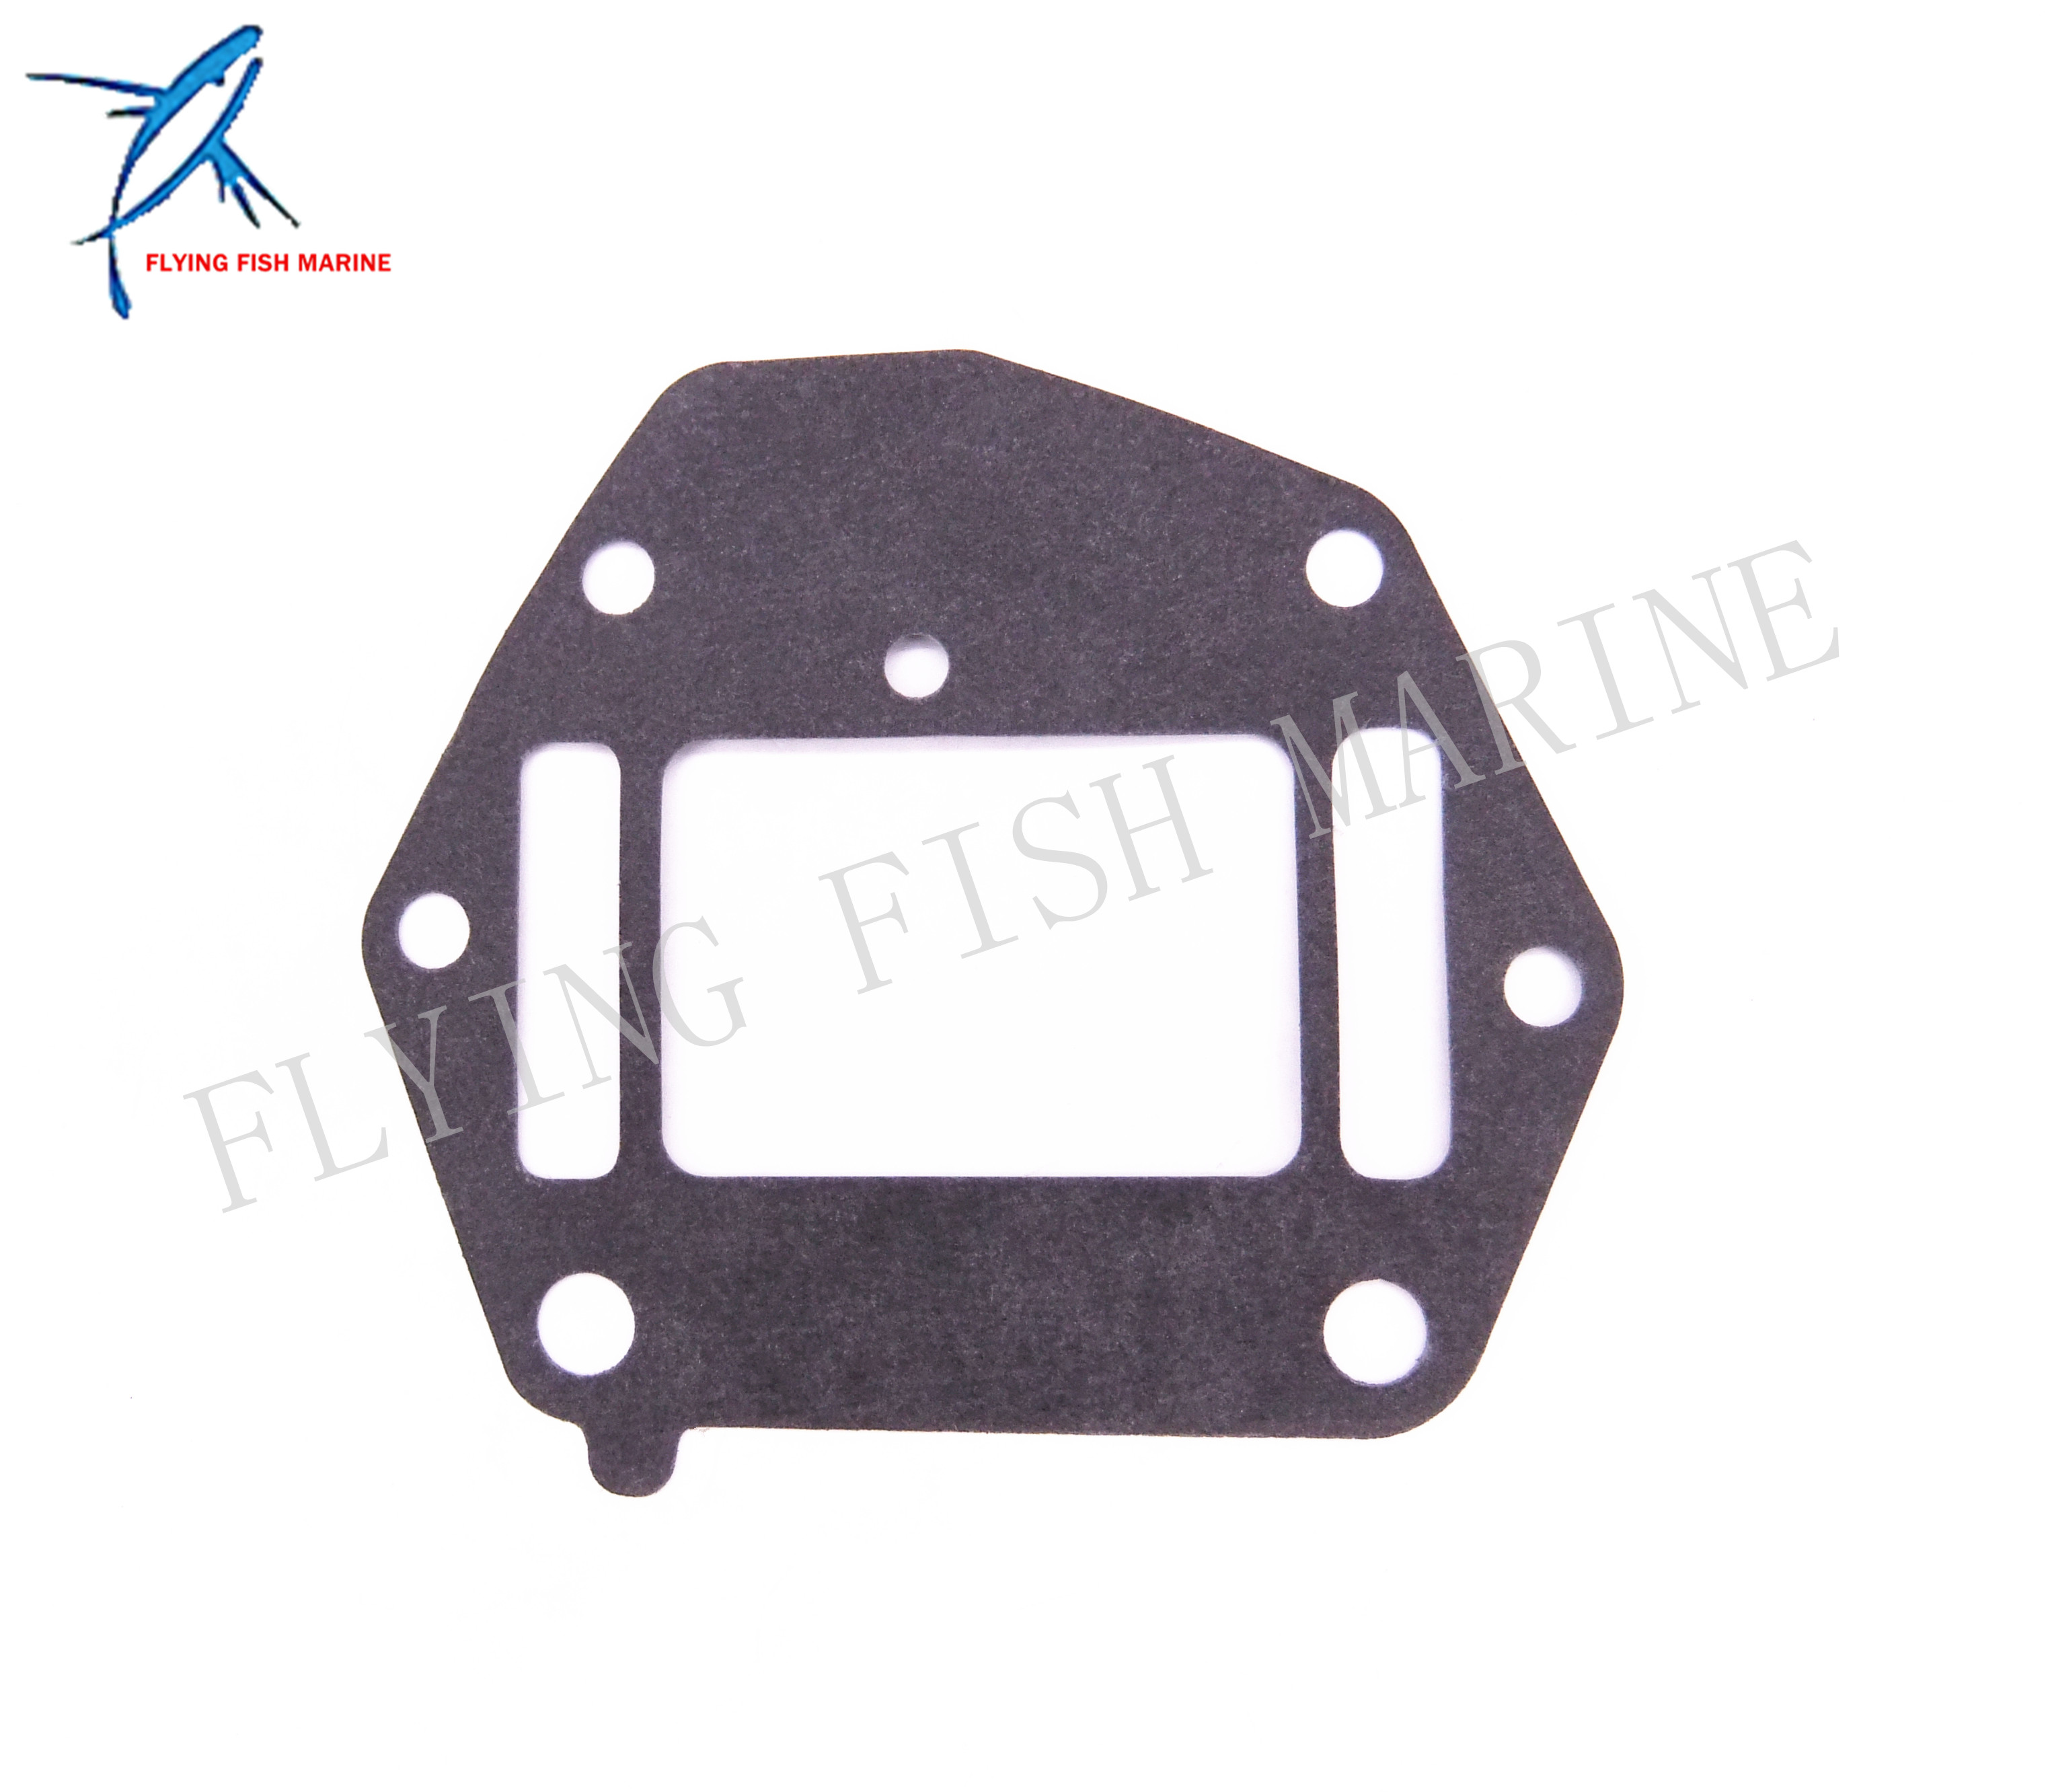 3B2-02105-0 3B202-1050M Inlet Manifold Outer Gasket for Tohatsu 6HP 8HP 9.8HP